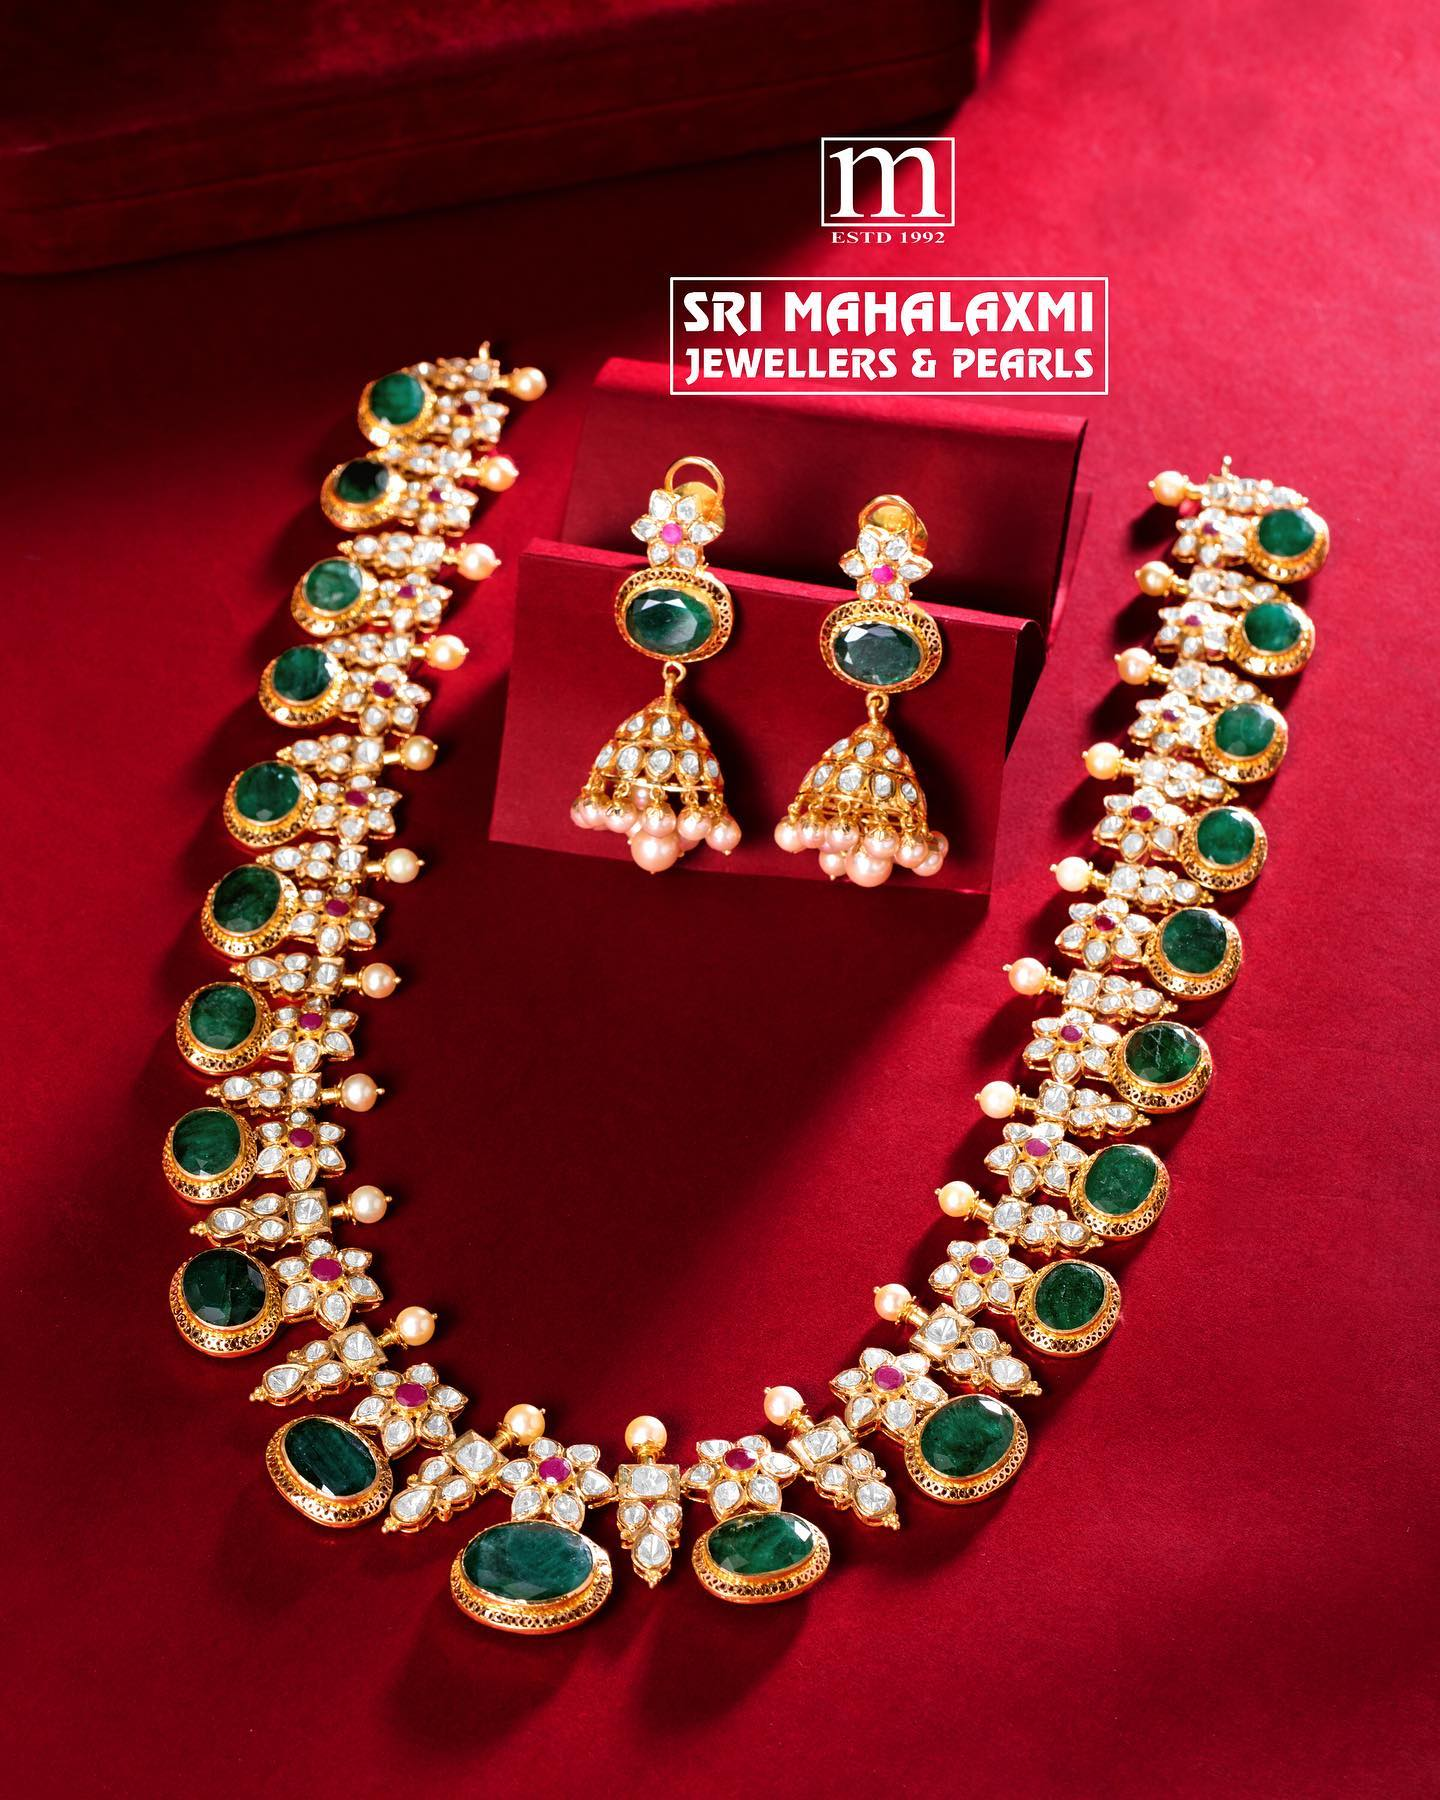 Fine Zambian emeralds combined with excellent quality flat diamonds designed elegantly.